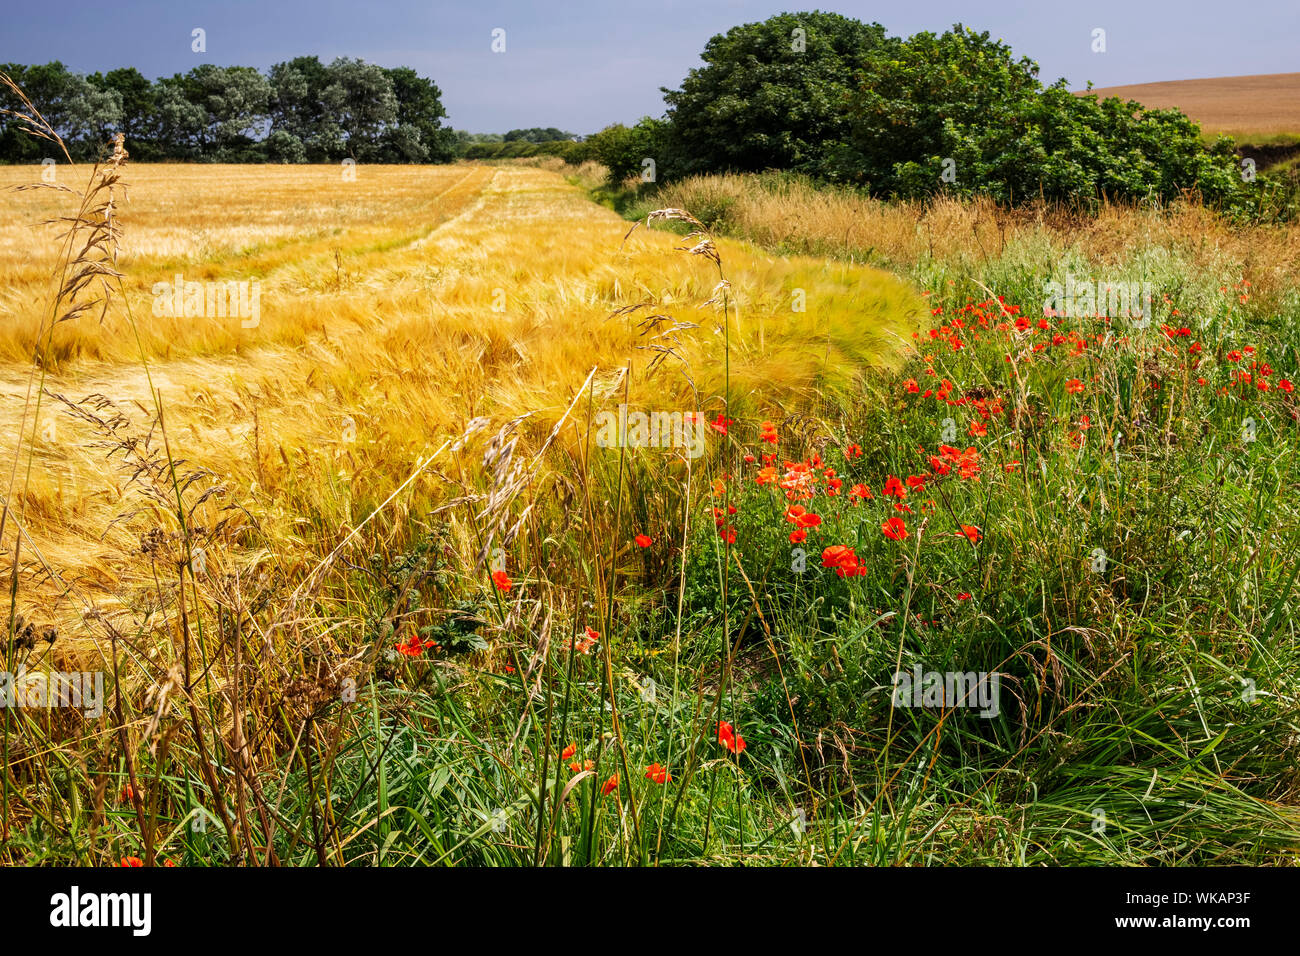 Poppies growing at the edge of a field of barley, Bridlington to Flamborough coastal path, Yorkshire, UK Stock Photo